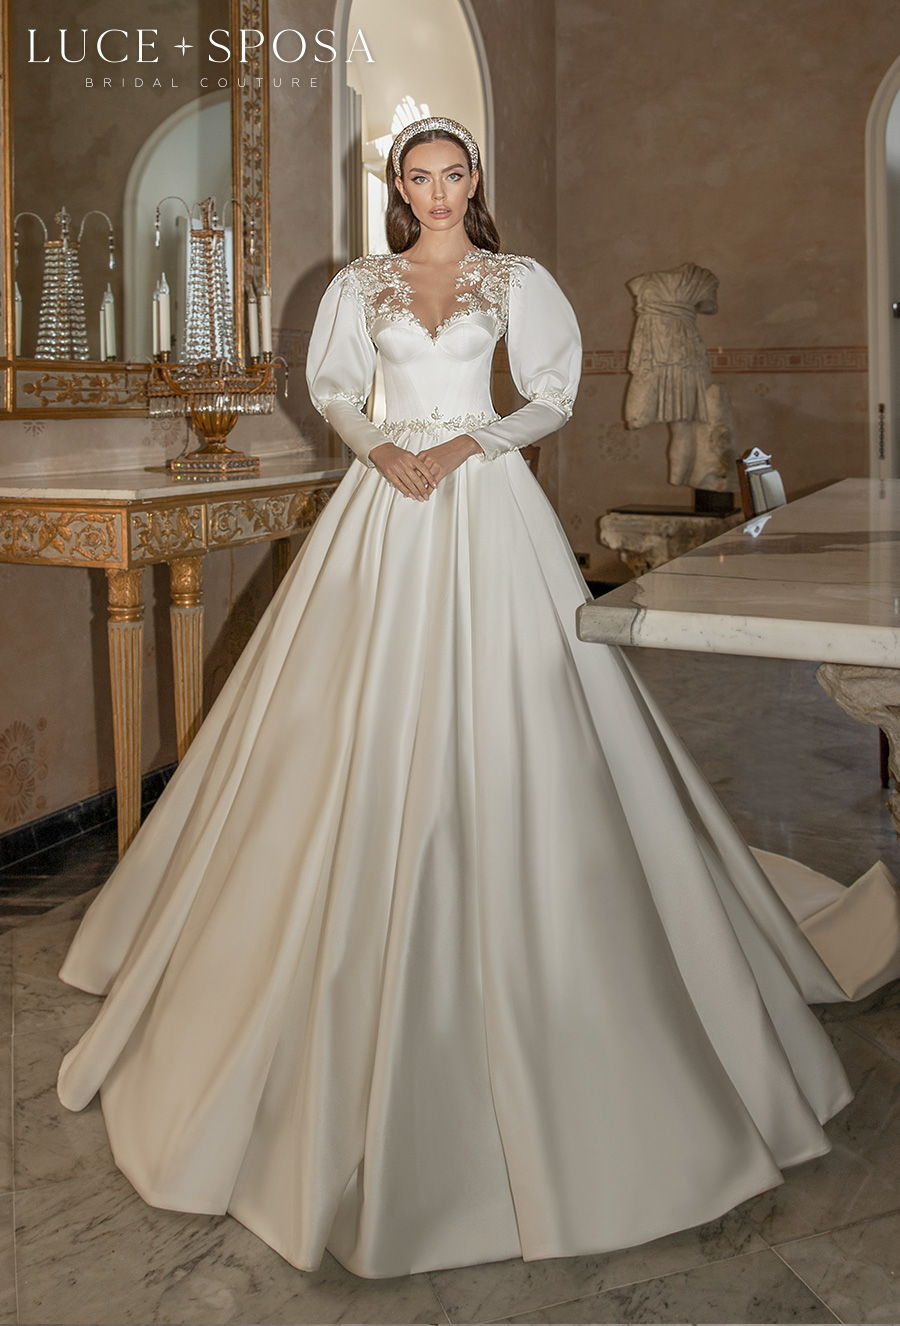 luce sposa 2021 sorrento bridal long gigot sleeves sweetheart neckline simple elegant princess a line wedding dress lace button midback royal train (alessia) mv